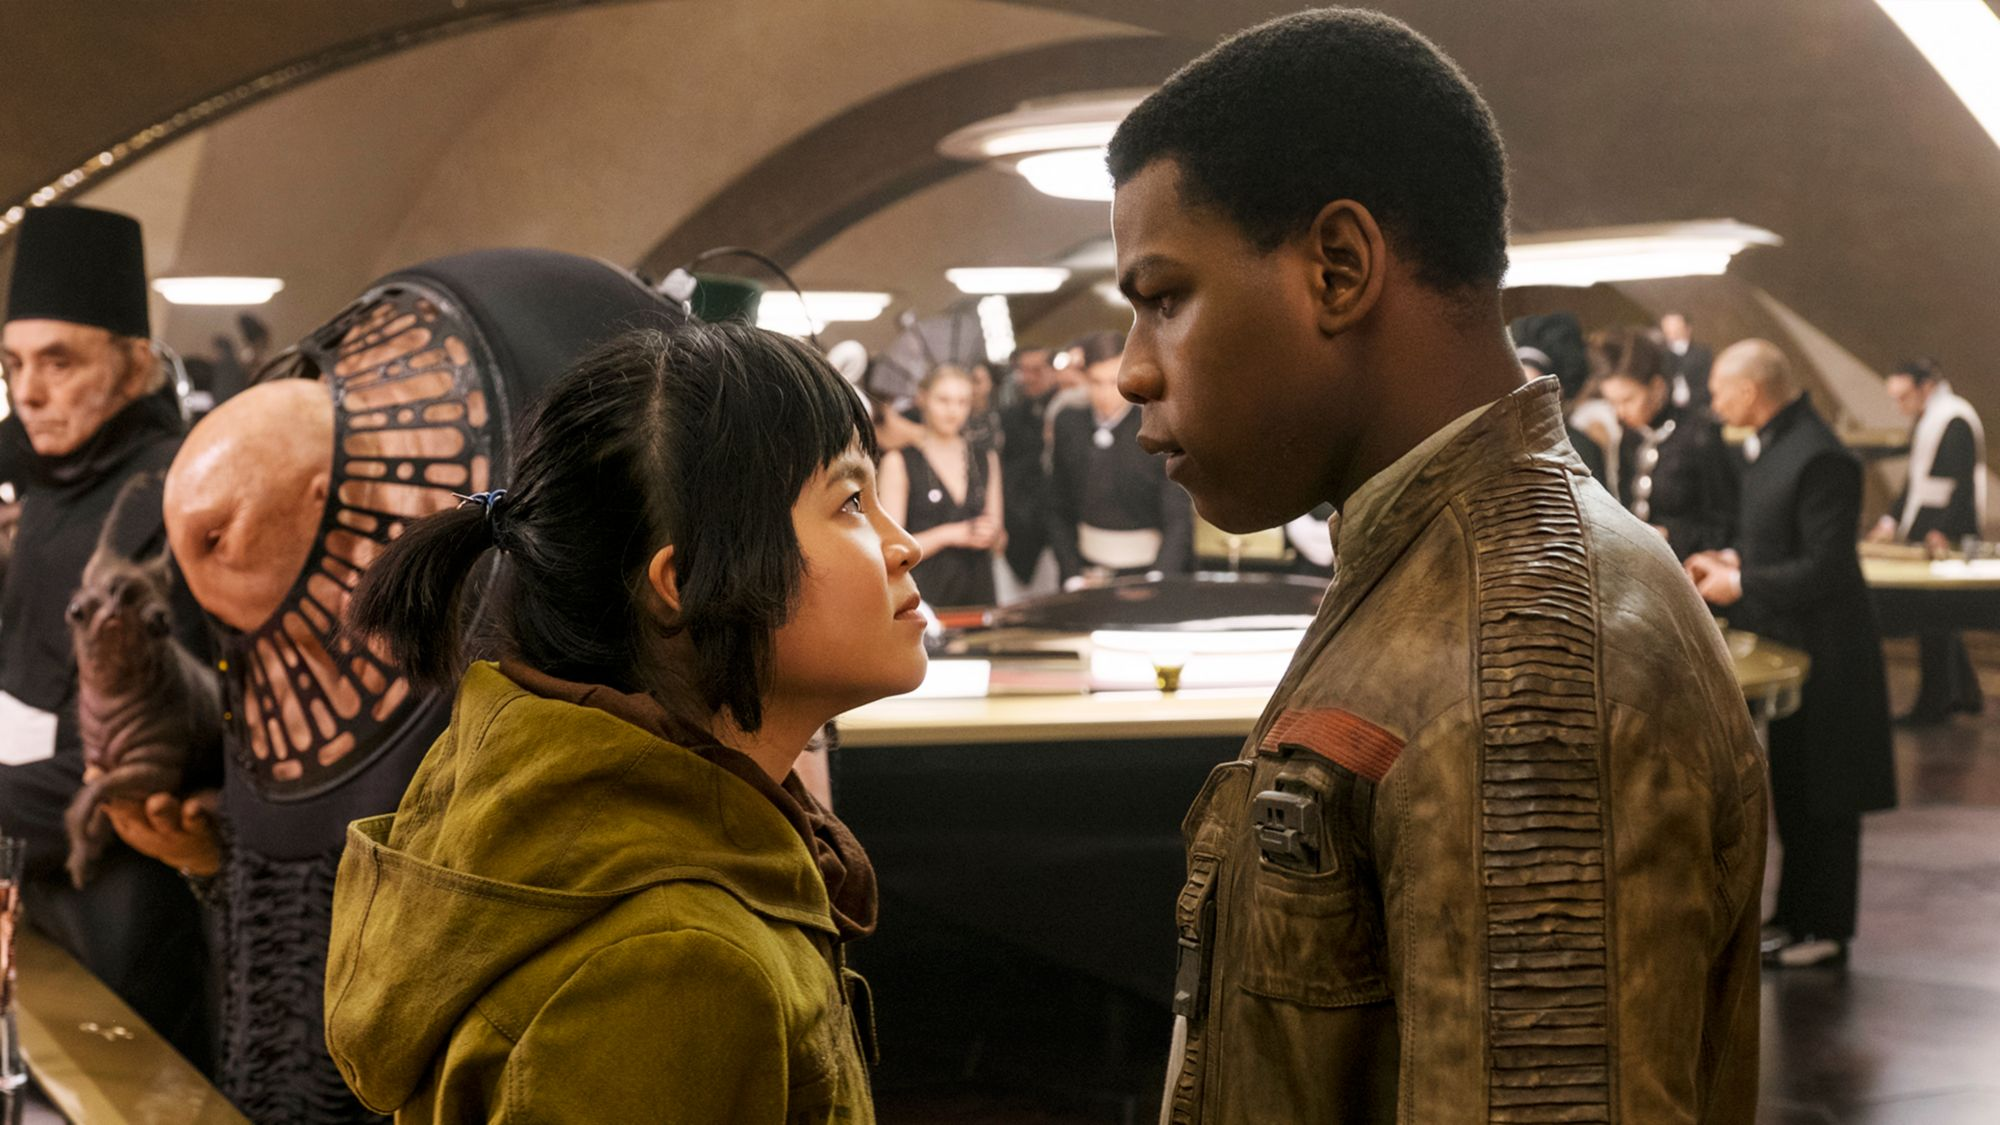 Star Wars The Last Jedi hub: Phil and Rose talking